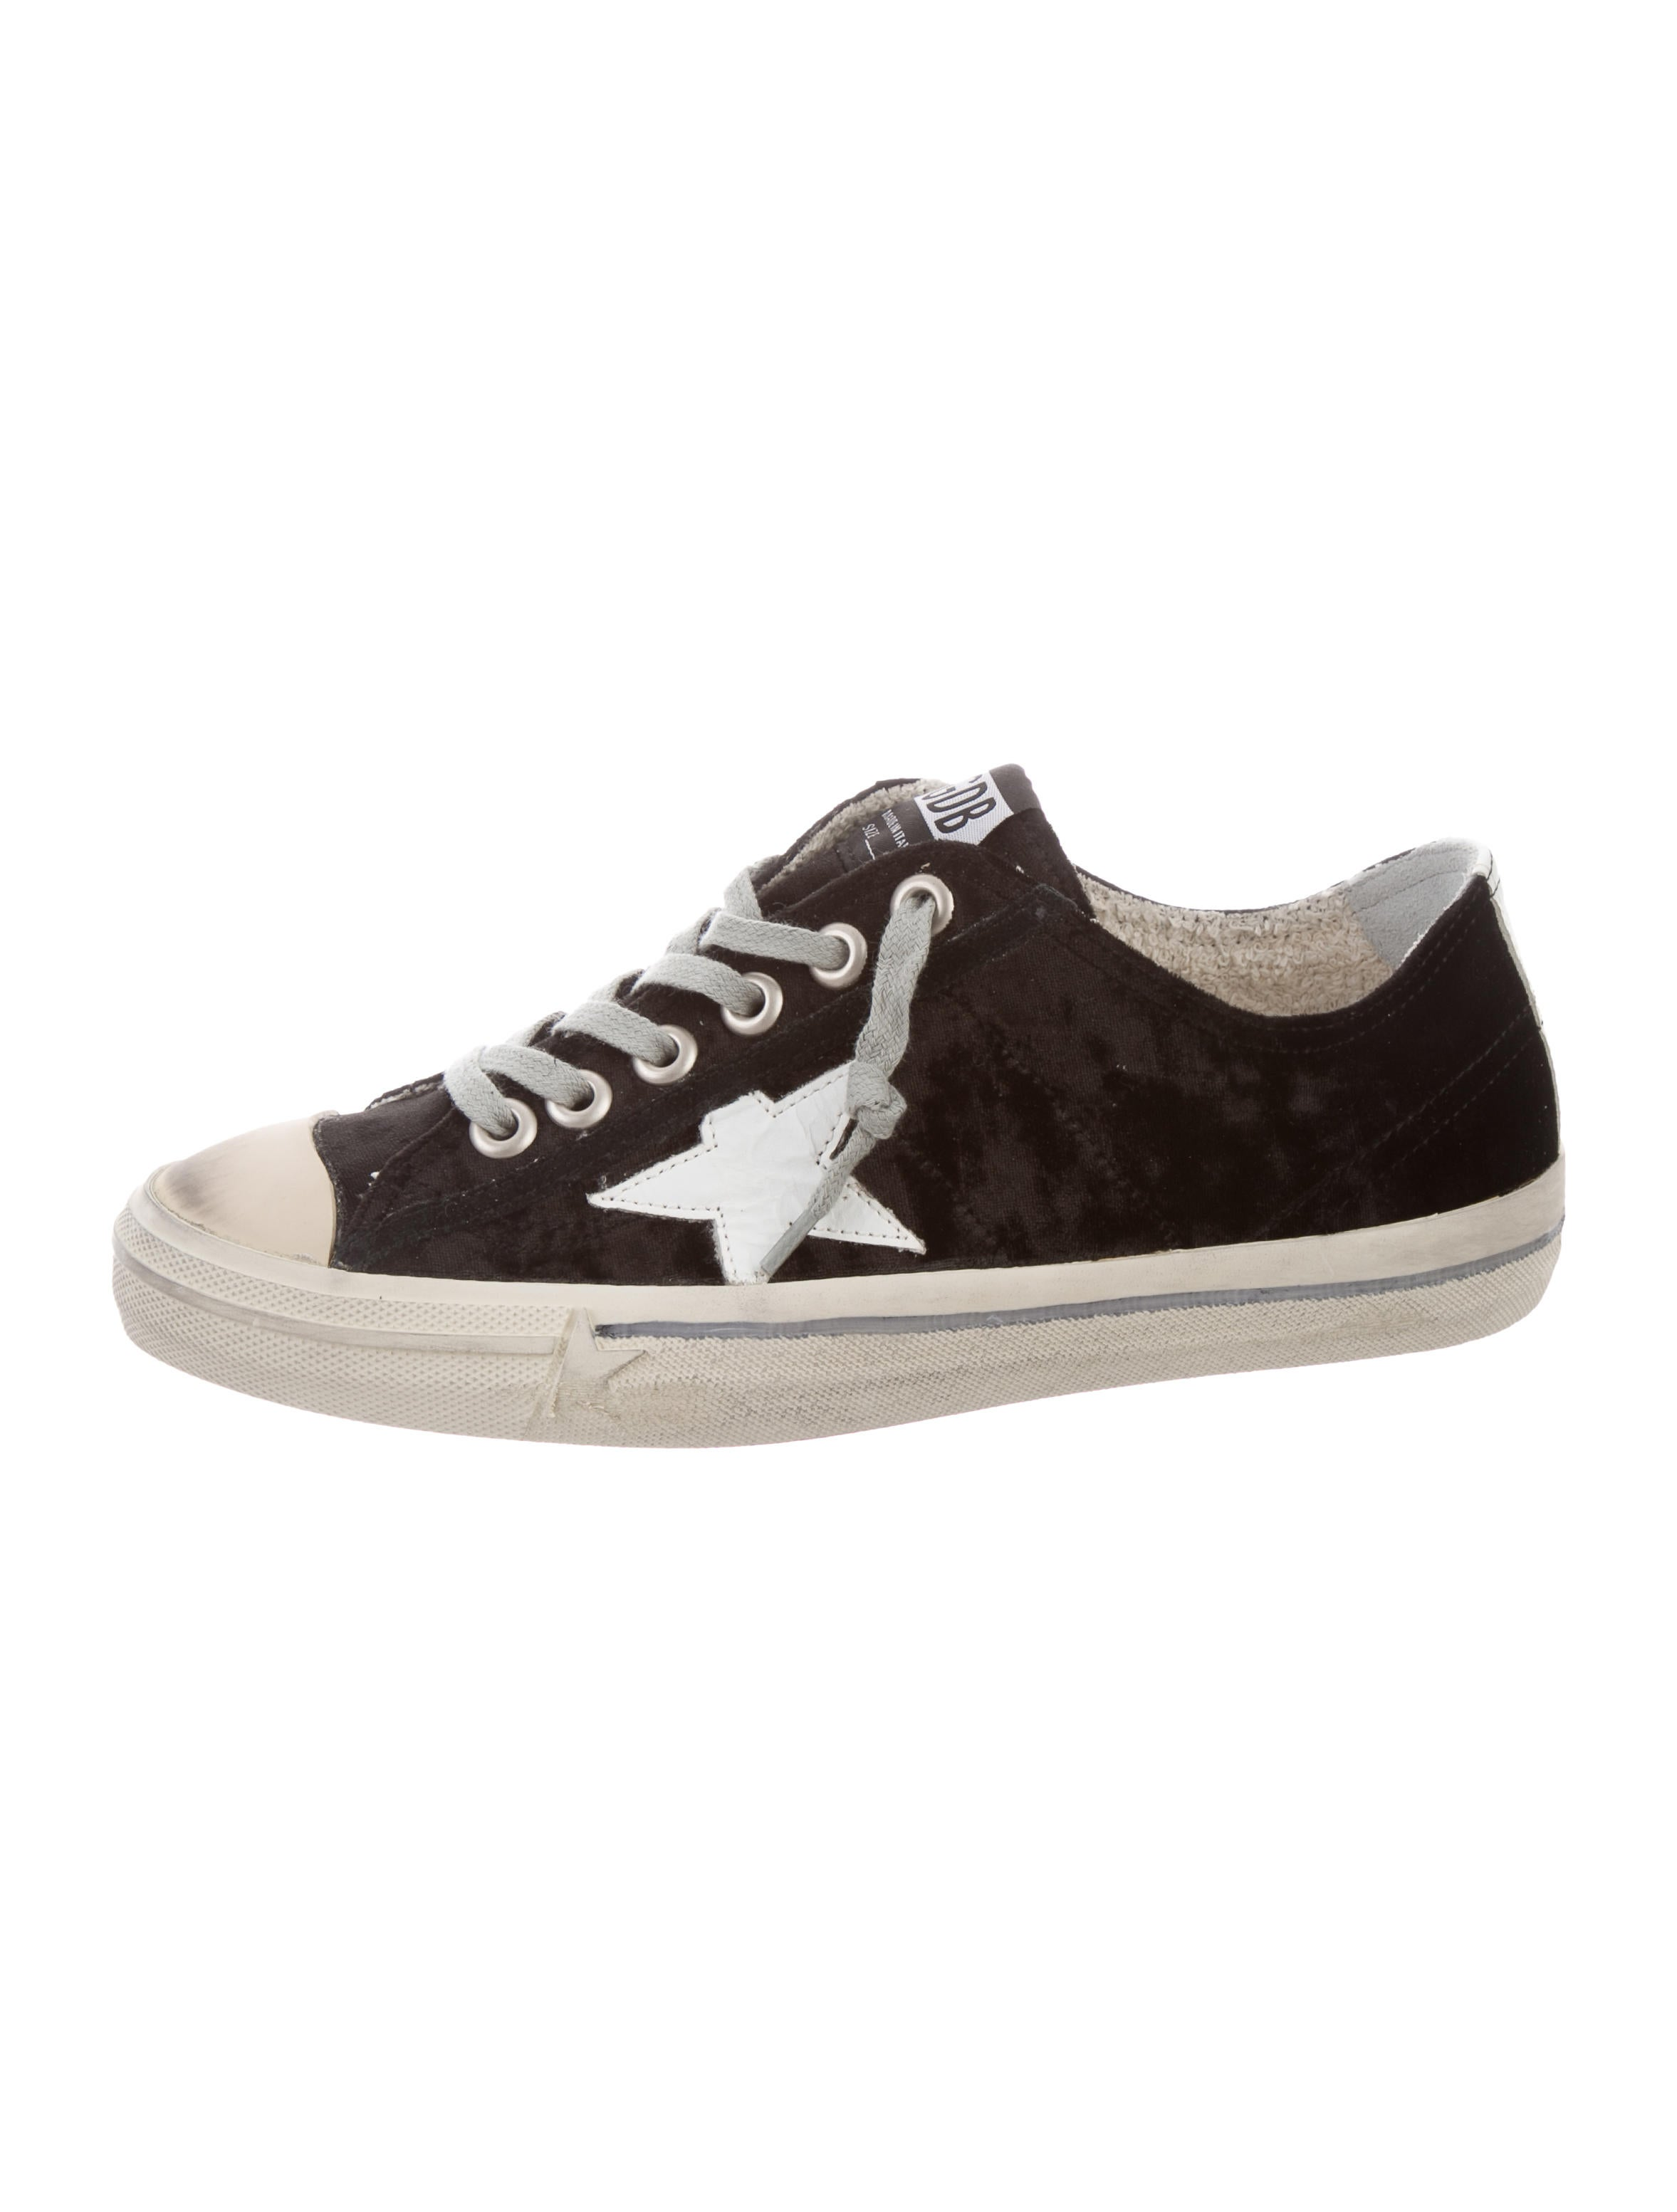 low price fee shipping cheap online Golden Goose Velvet Superstar Sneakers w/ Tags official for sale cheap with paypal clearance free shipping clearance store cheap price ycuKLMLlIh